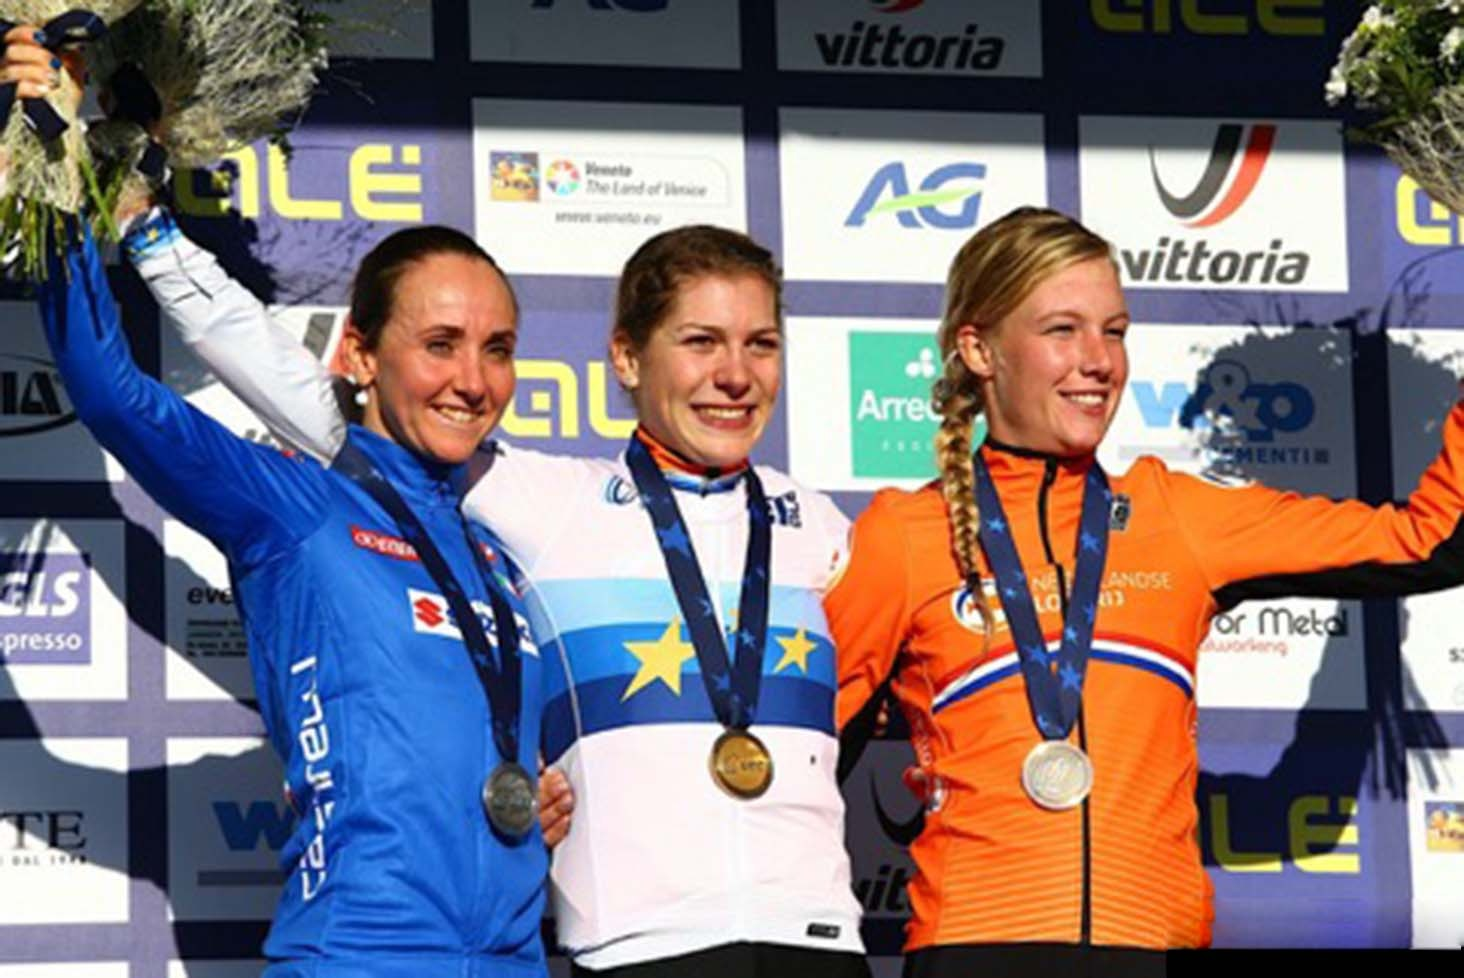 EVA LECHNER DOESN'T CEASE TO AMAZE AND WINS THE SILVER MEDAL AT THE EUROPEAN CX IN SILVELLE.